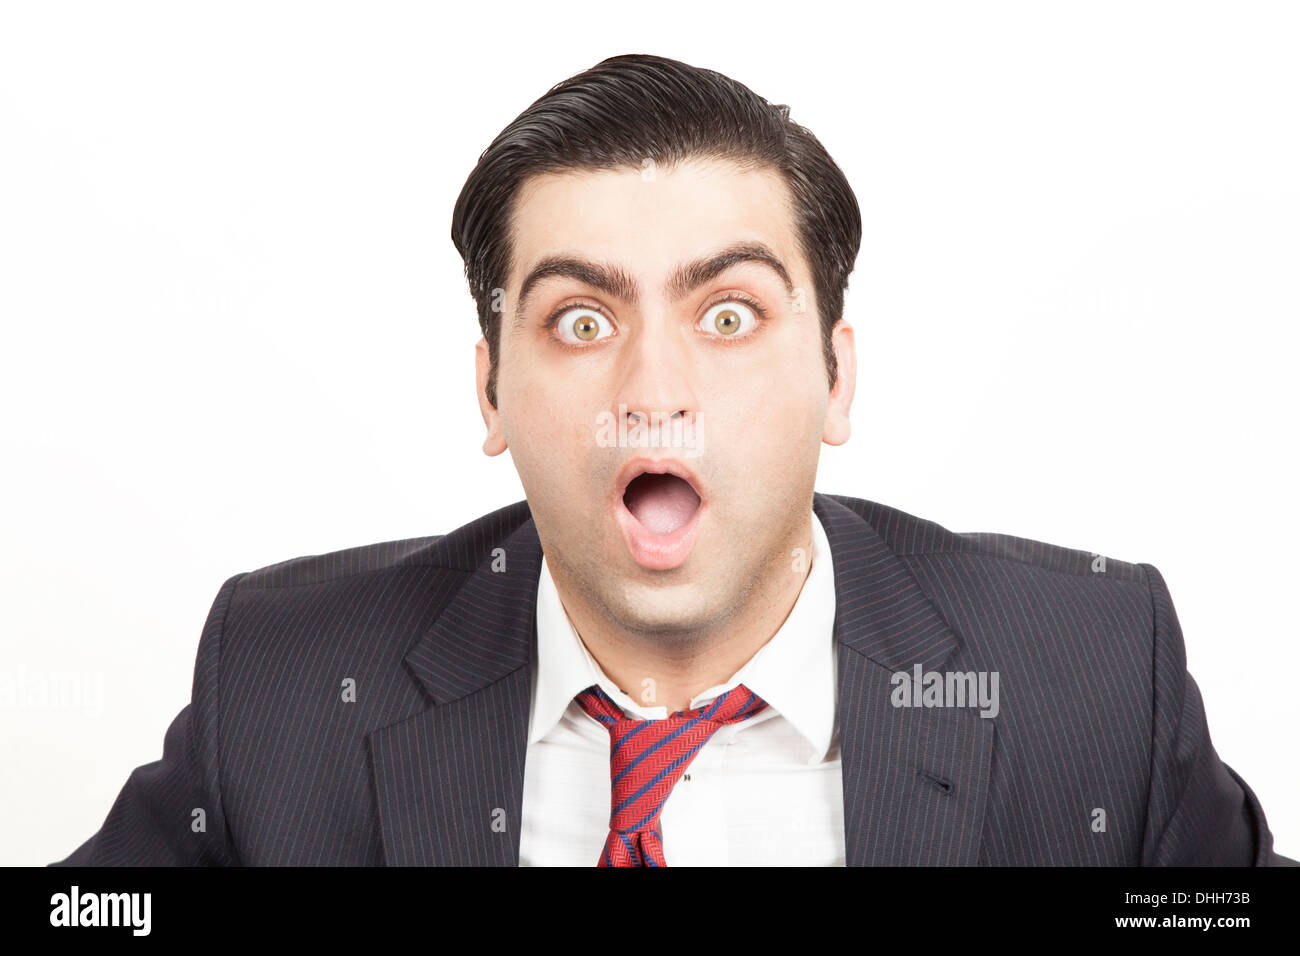 Bussiness man with a shocked expression - Stock Image